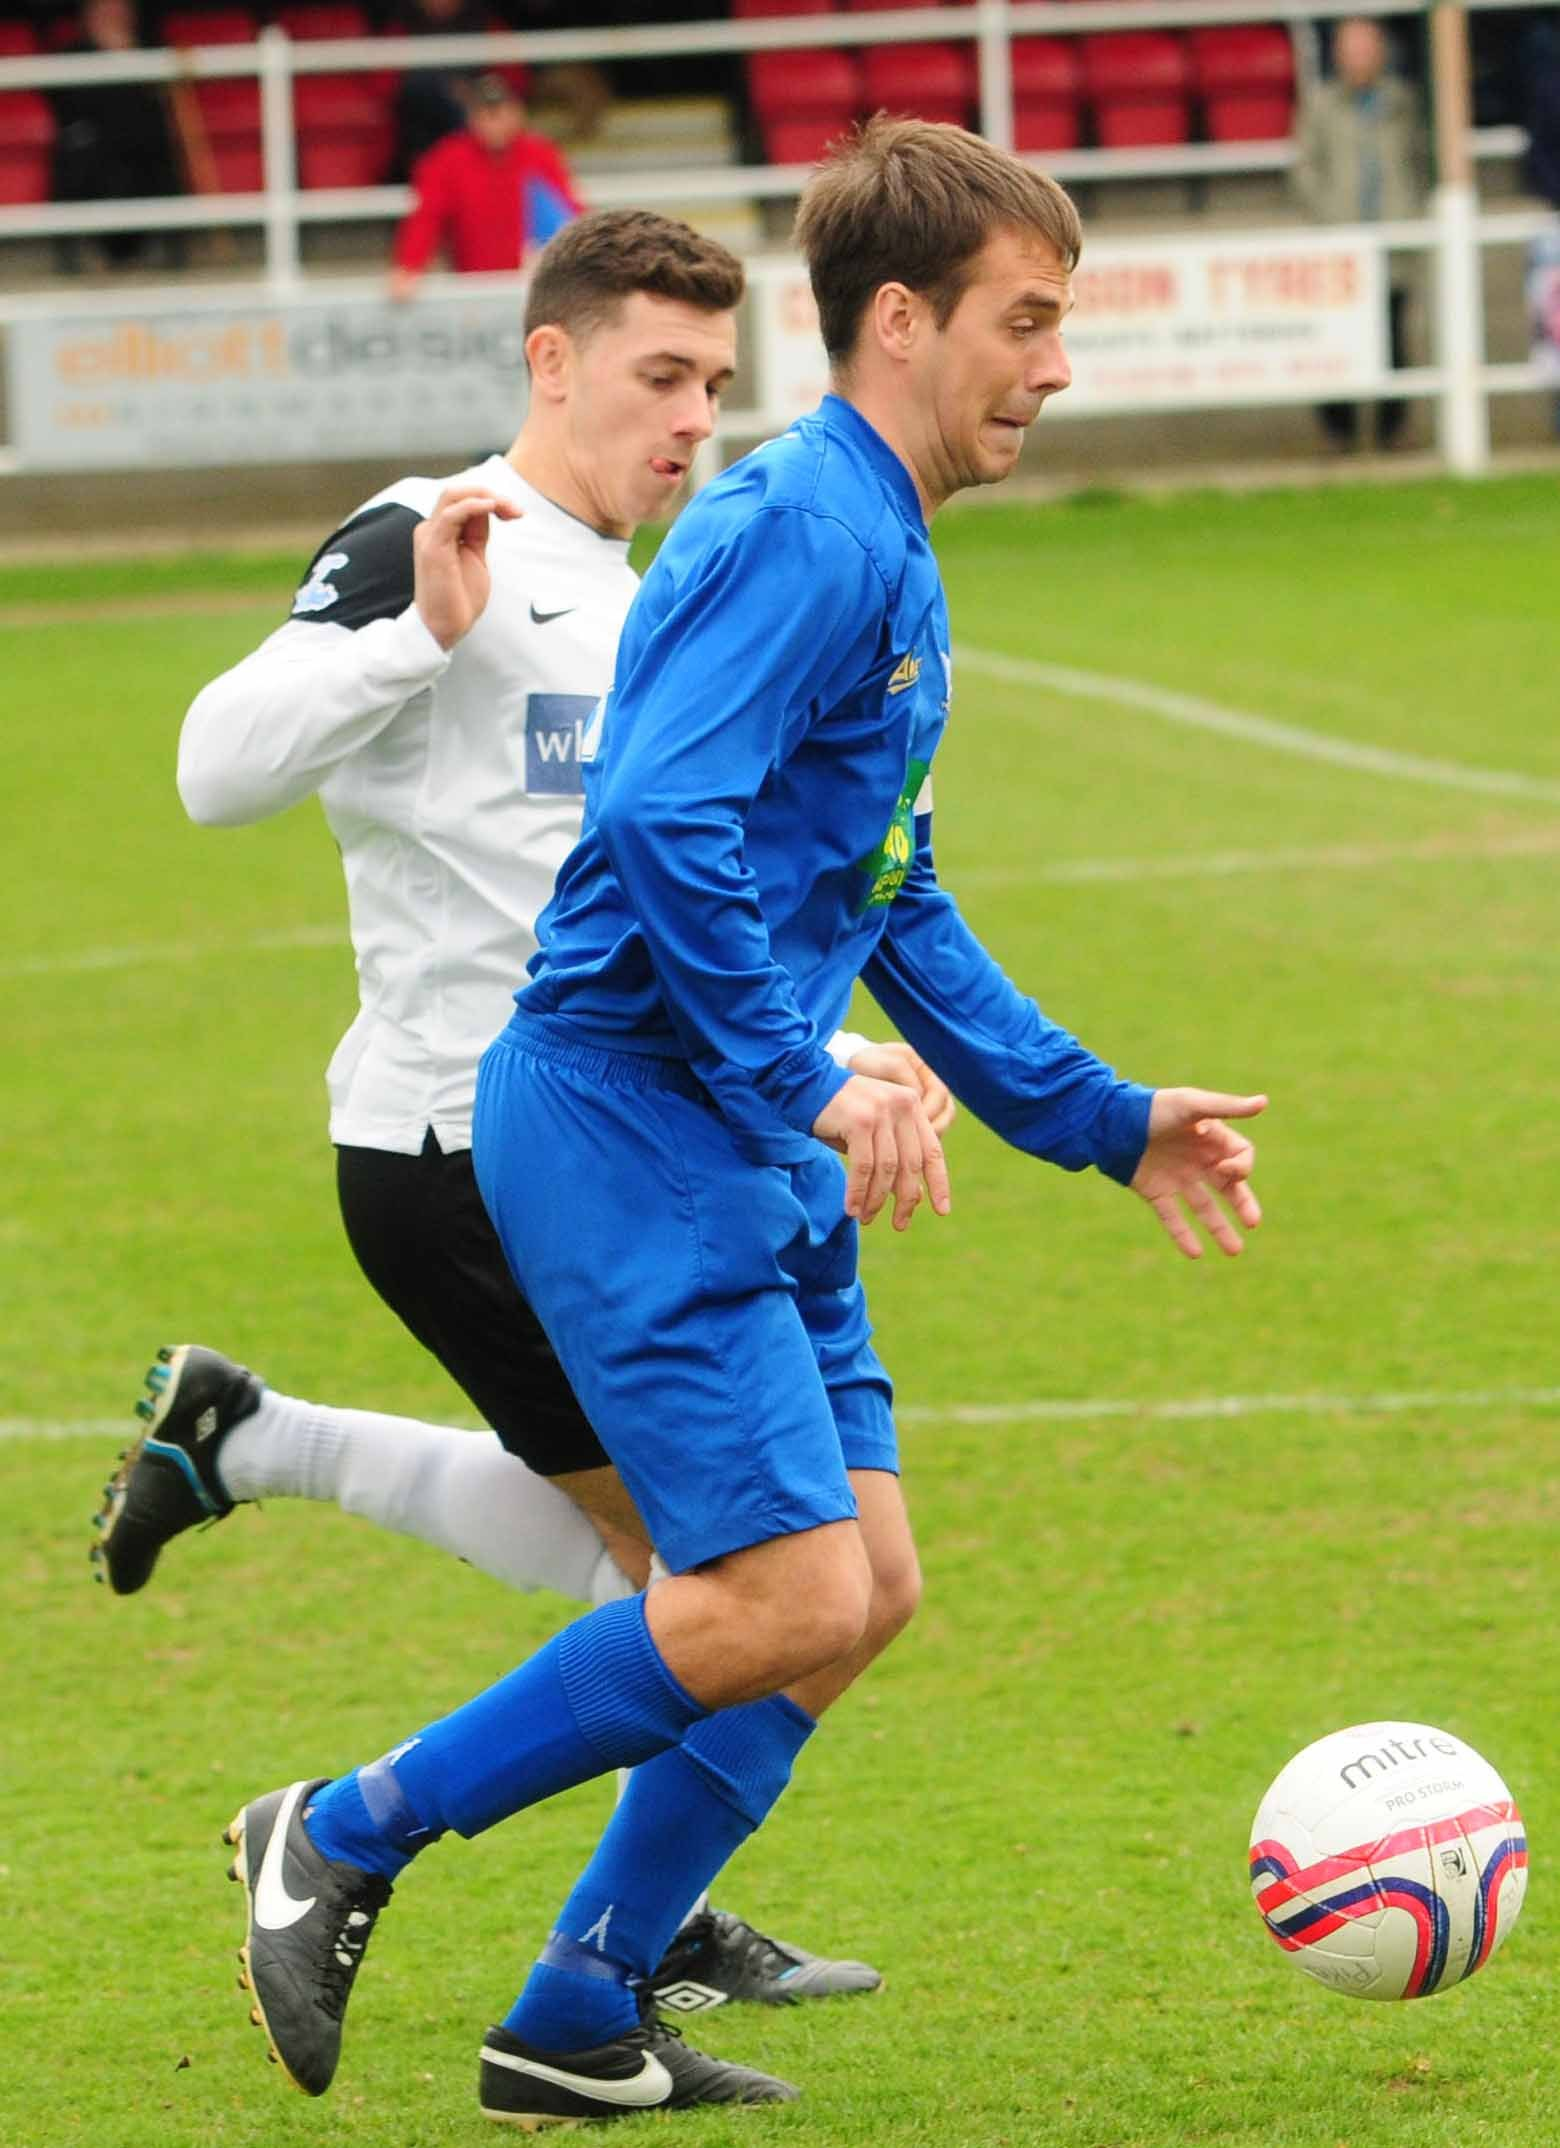 Pickering Town surge into top six slot